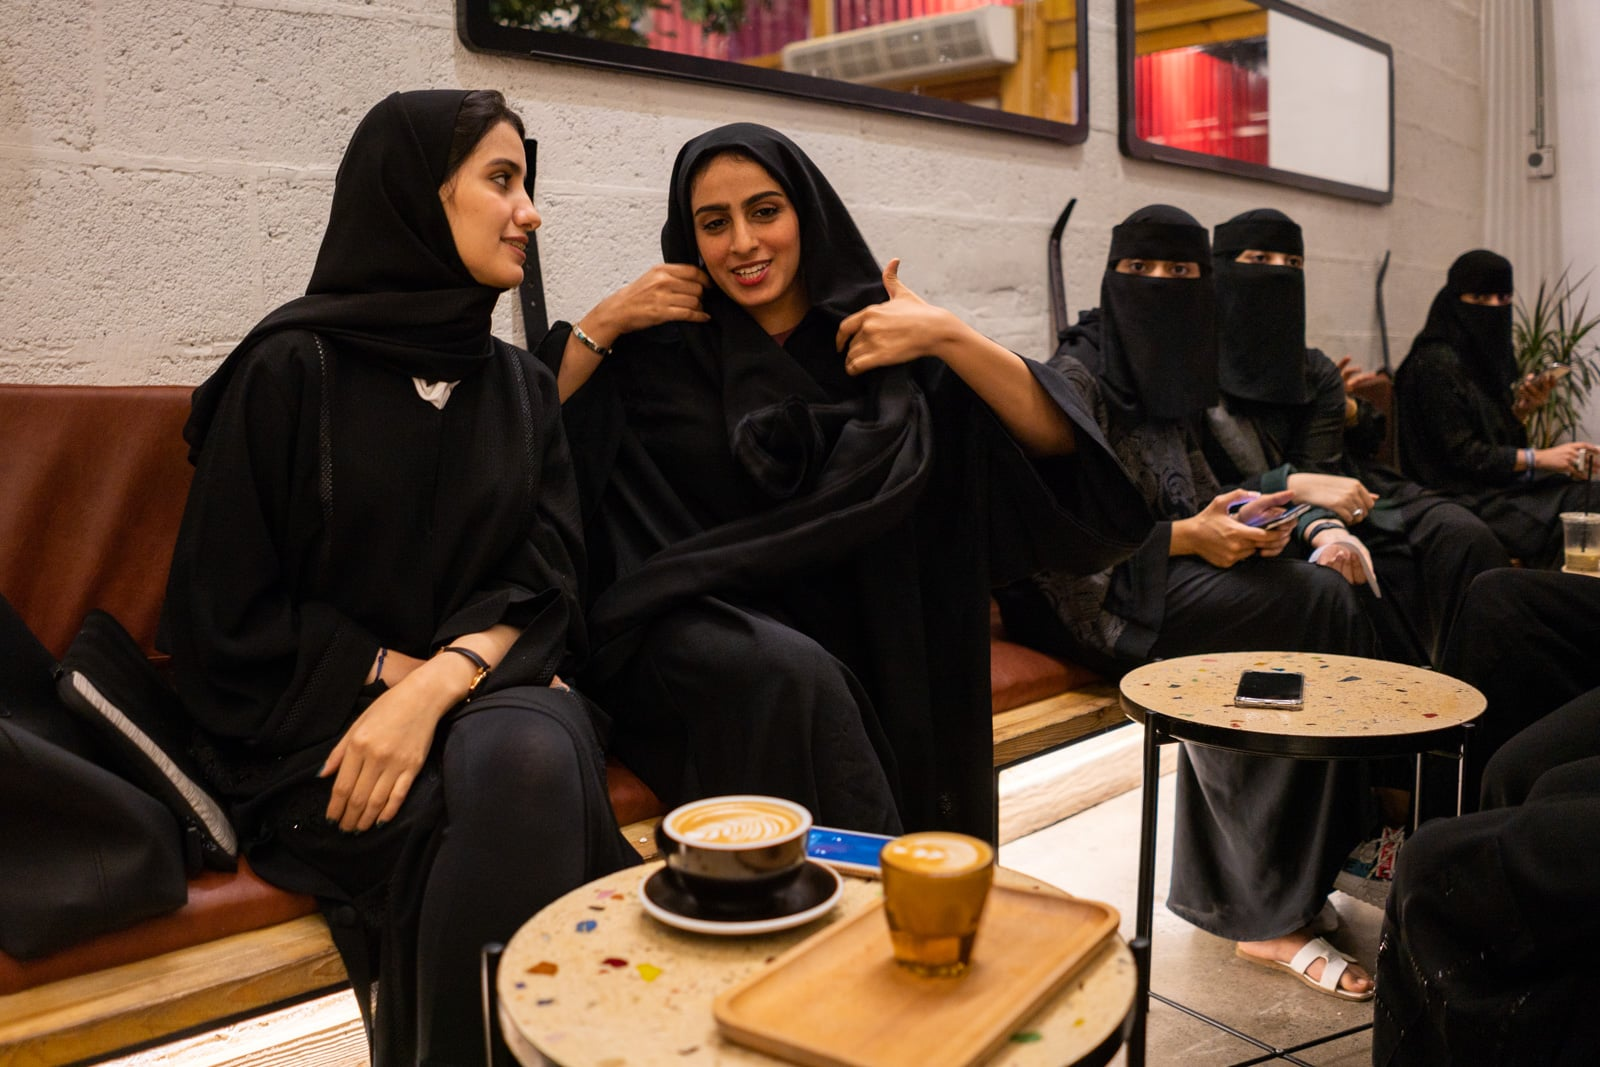 Young women in black sitting in the family section of a cafe in Jazan, Saudi Arabia